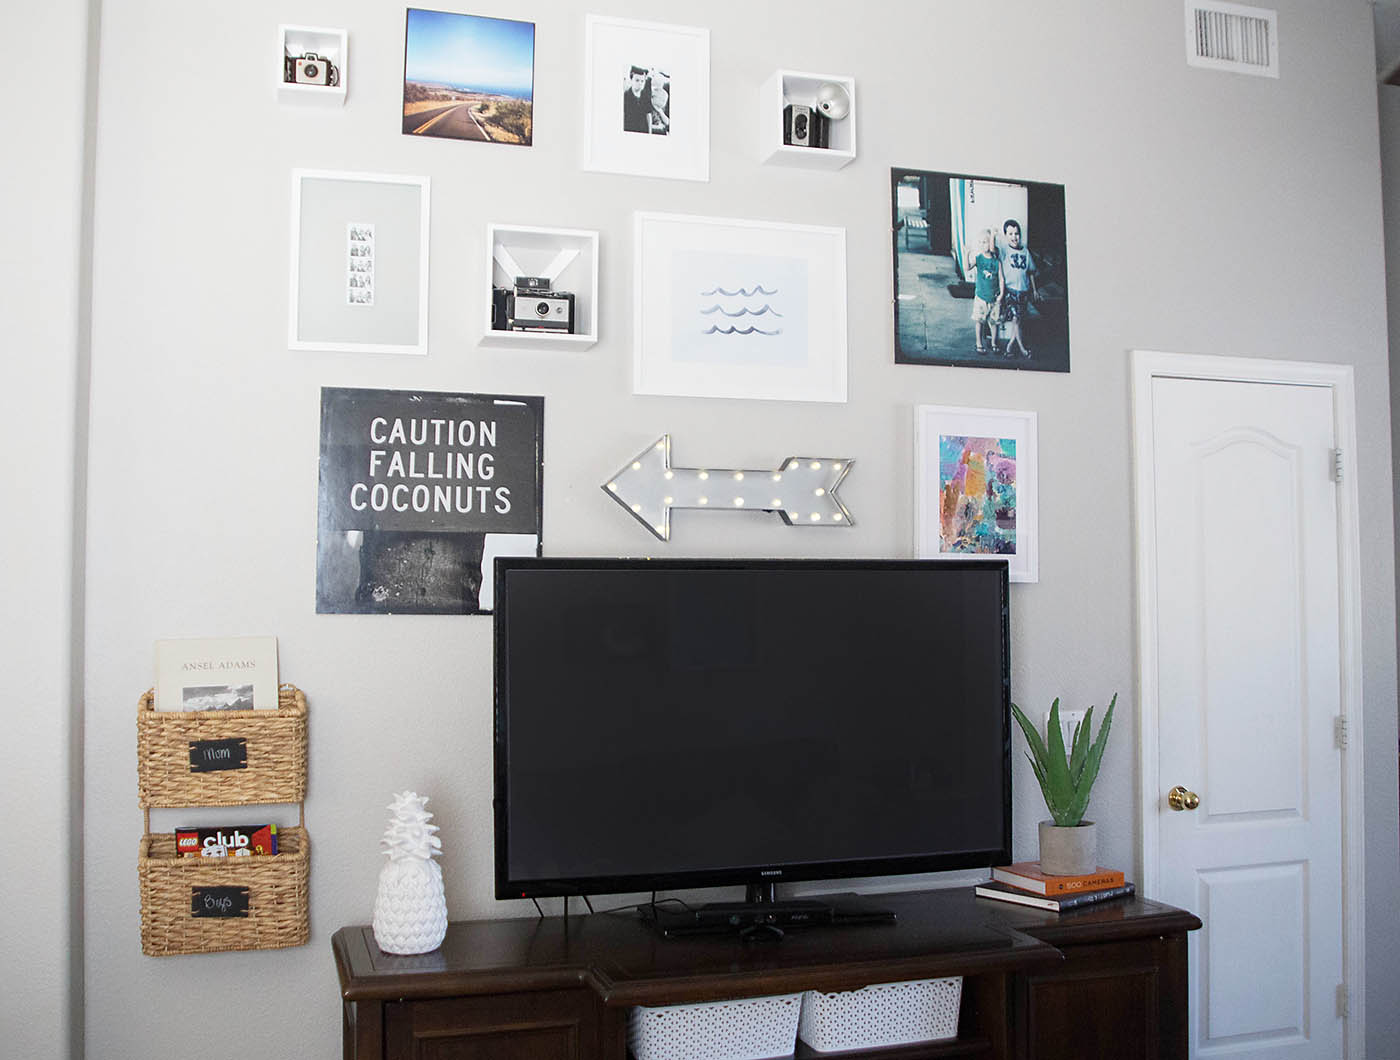 Target $100 Wall Gallery Challenge - All for the Memories